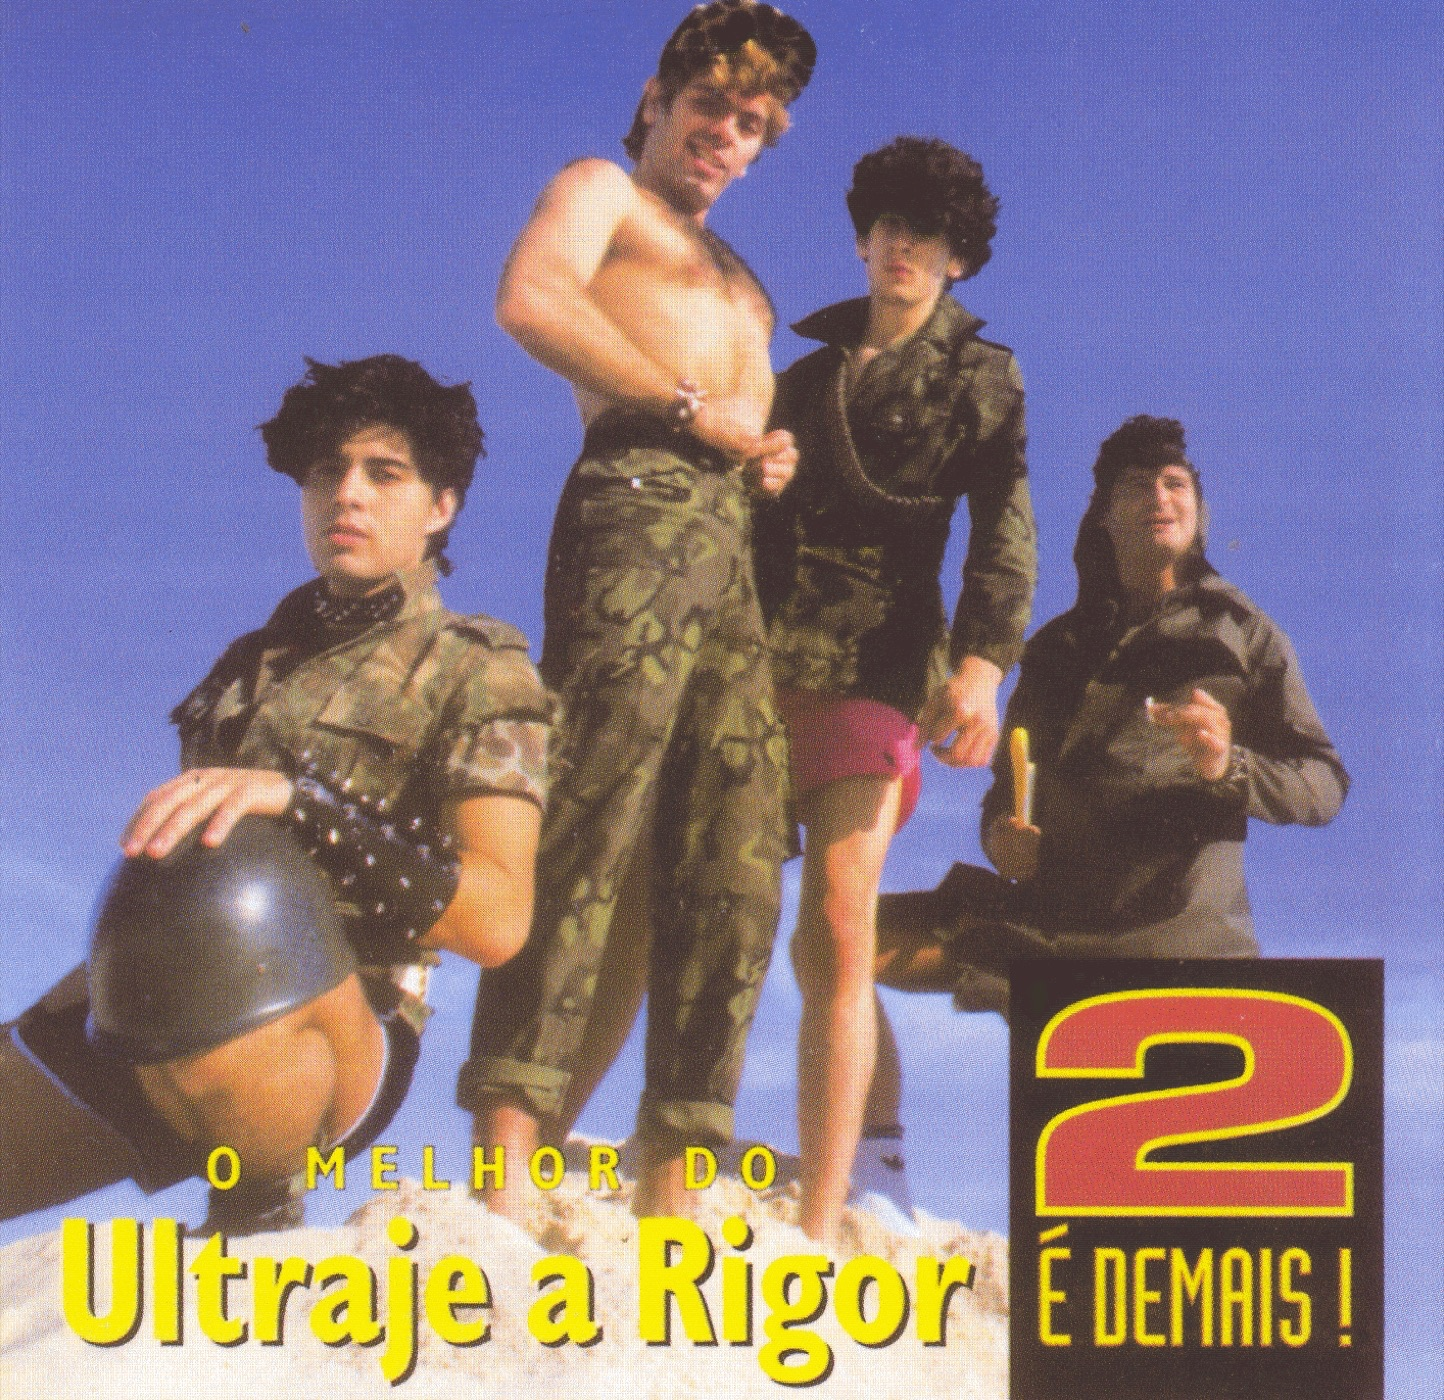 MP3 Songs Online:♫ Eu Me Amo - Ultraje a Rigor album 2 é Demais. Latino,Music,World listen to music online free without downloading.